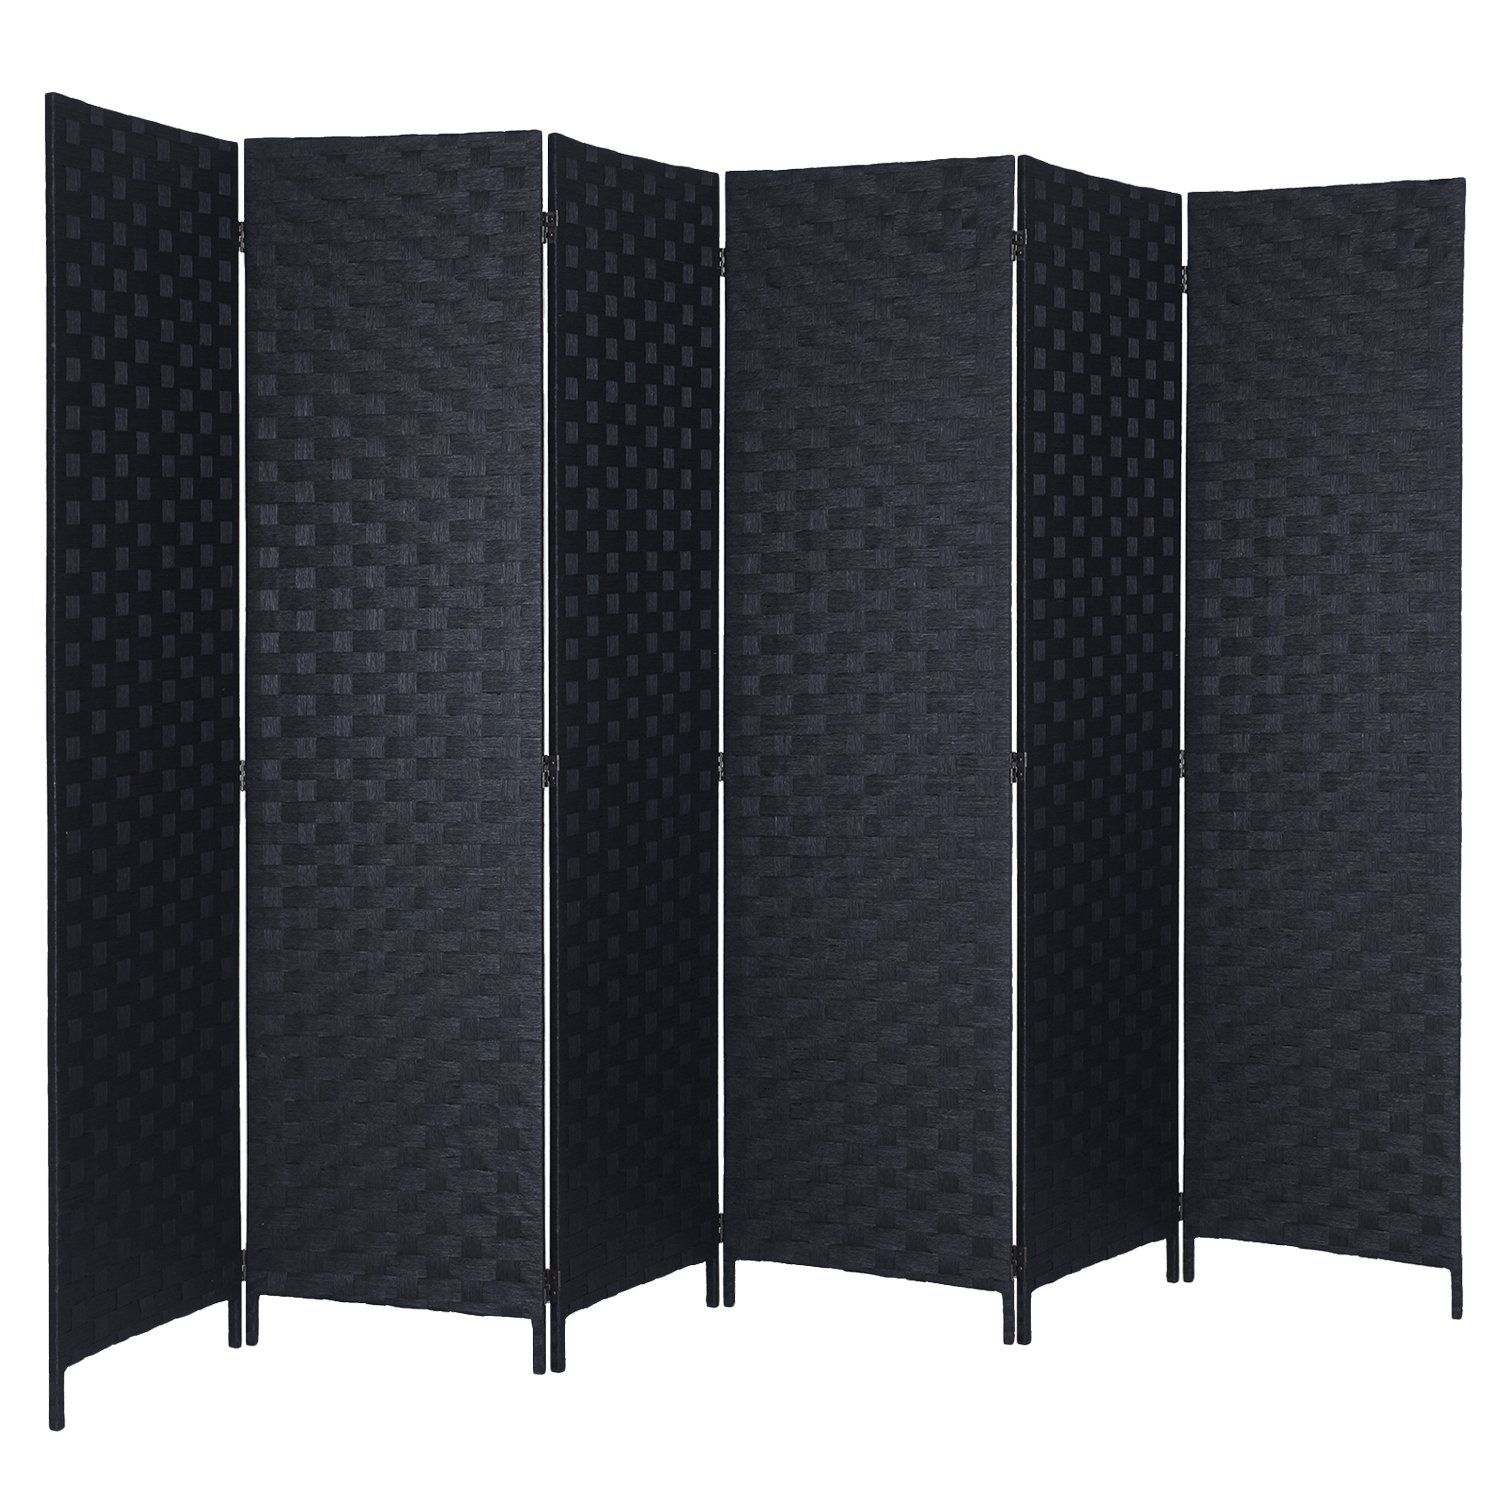 RHF 6 ft Tall (Extra Wide) Handmade Room Divider&Privacy Screen, Room Dividers and Folding Privacy Screens, Partition Wall & Wall Divider, Double-weaved, Provides Better Privacy- Black - 6 Panels